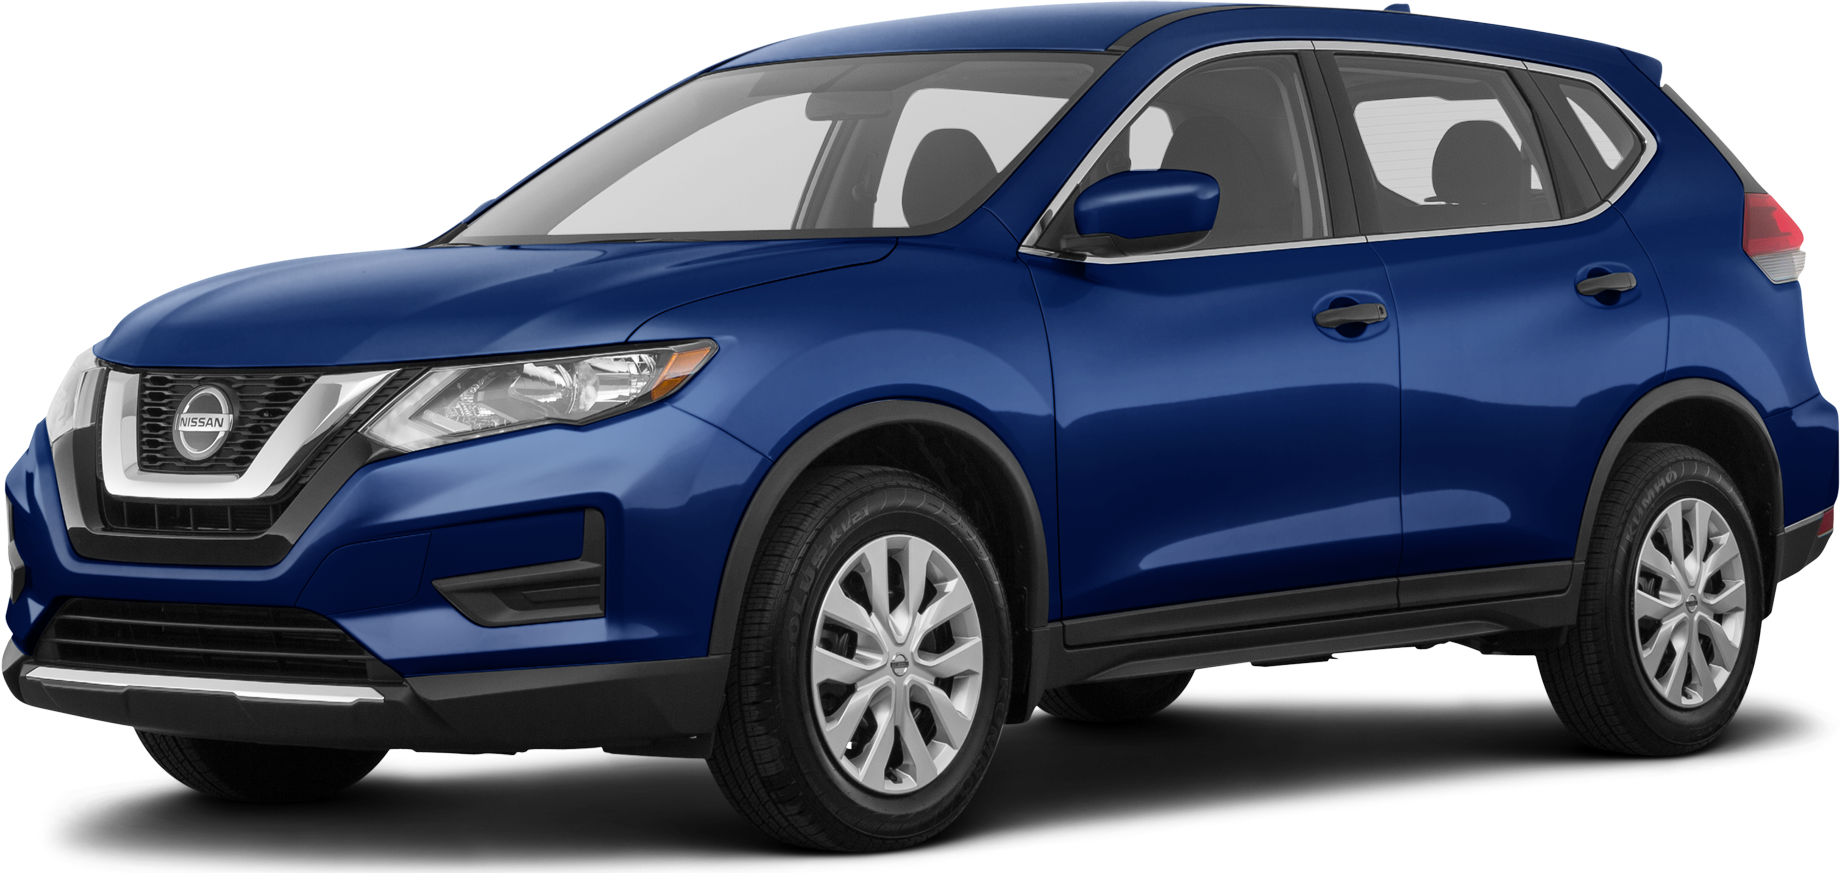 2018 Nissan Rogue Values Cars For Sale Kelley Blue Book